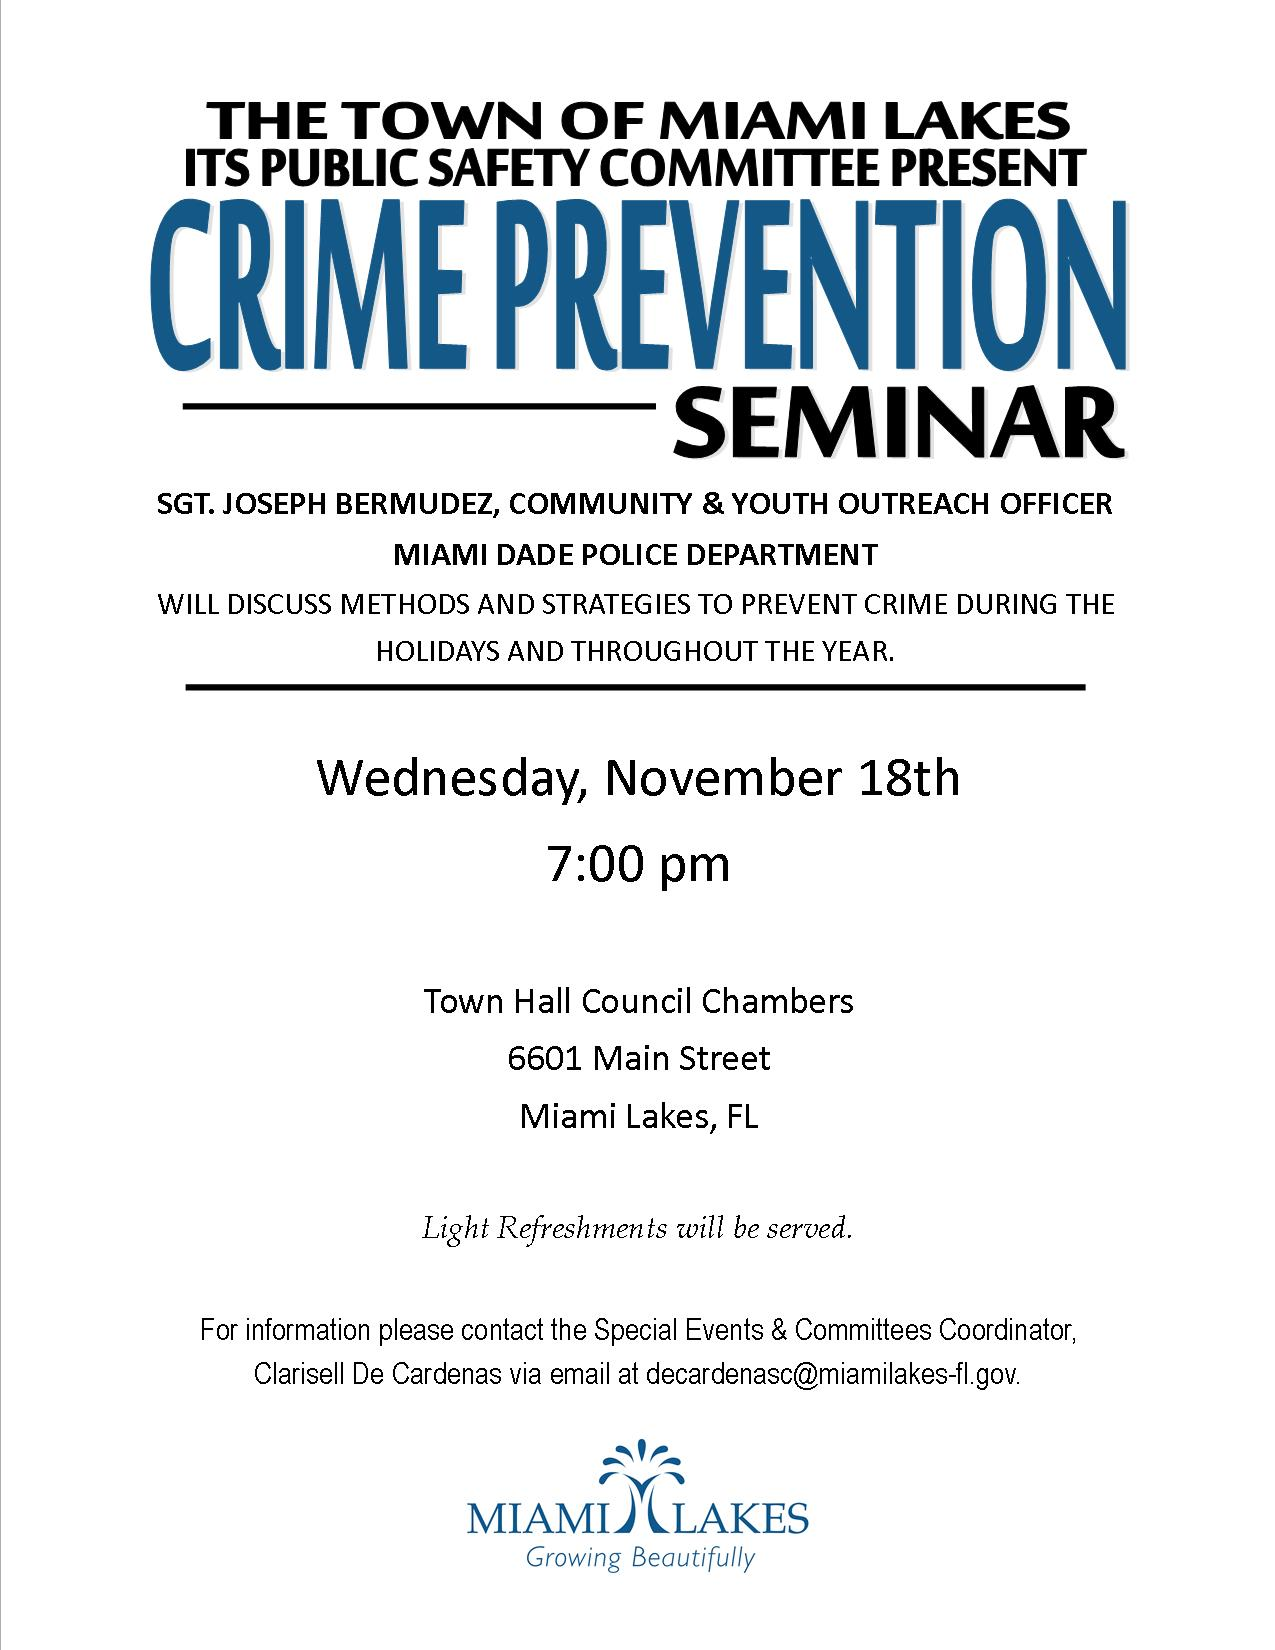 crime prevention seminar flyer